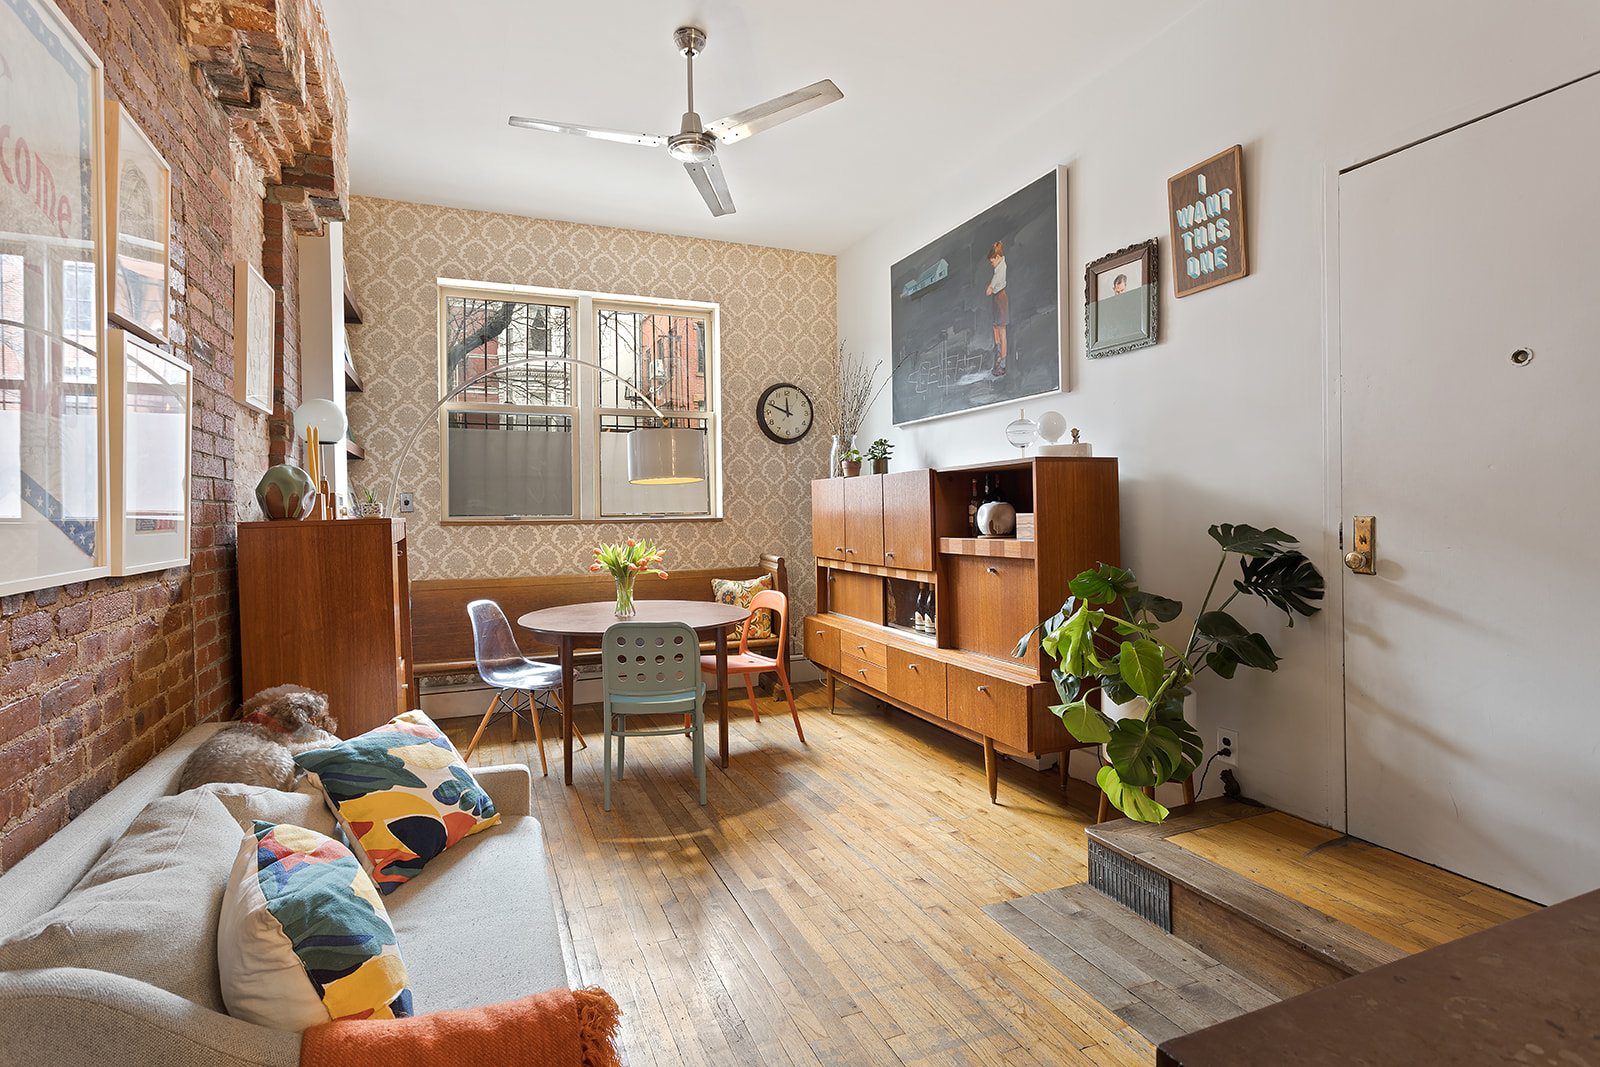 This Park Slope garden duplex has funky vintage style within